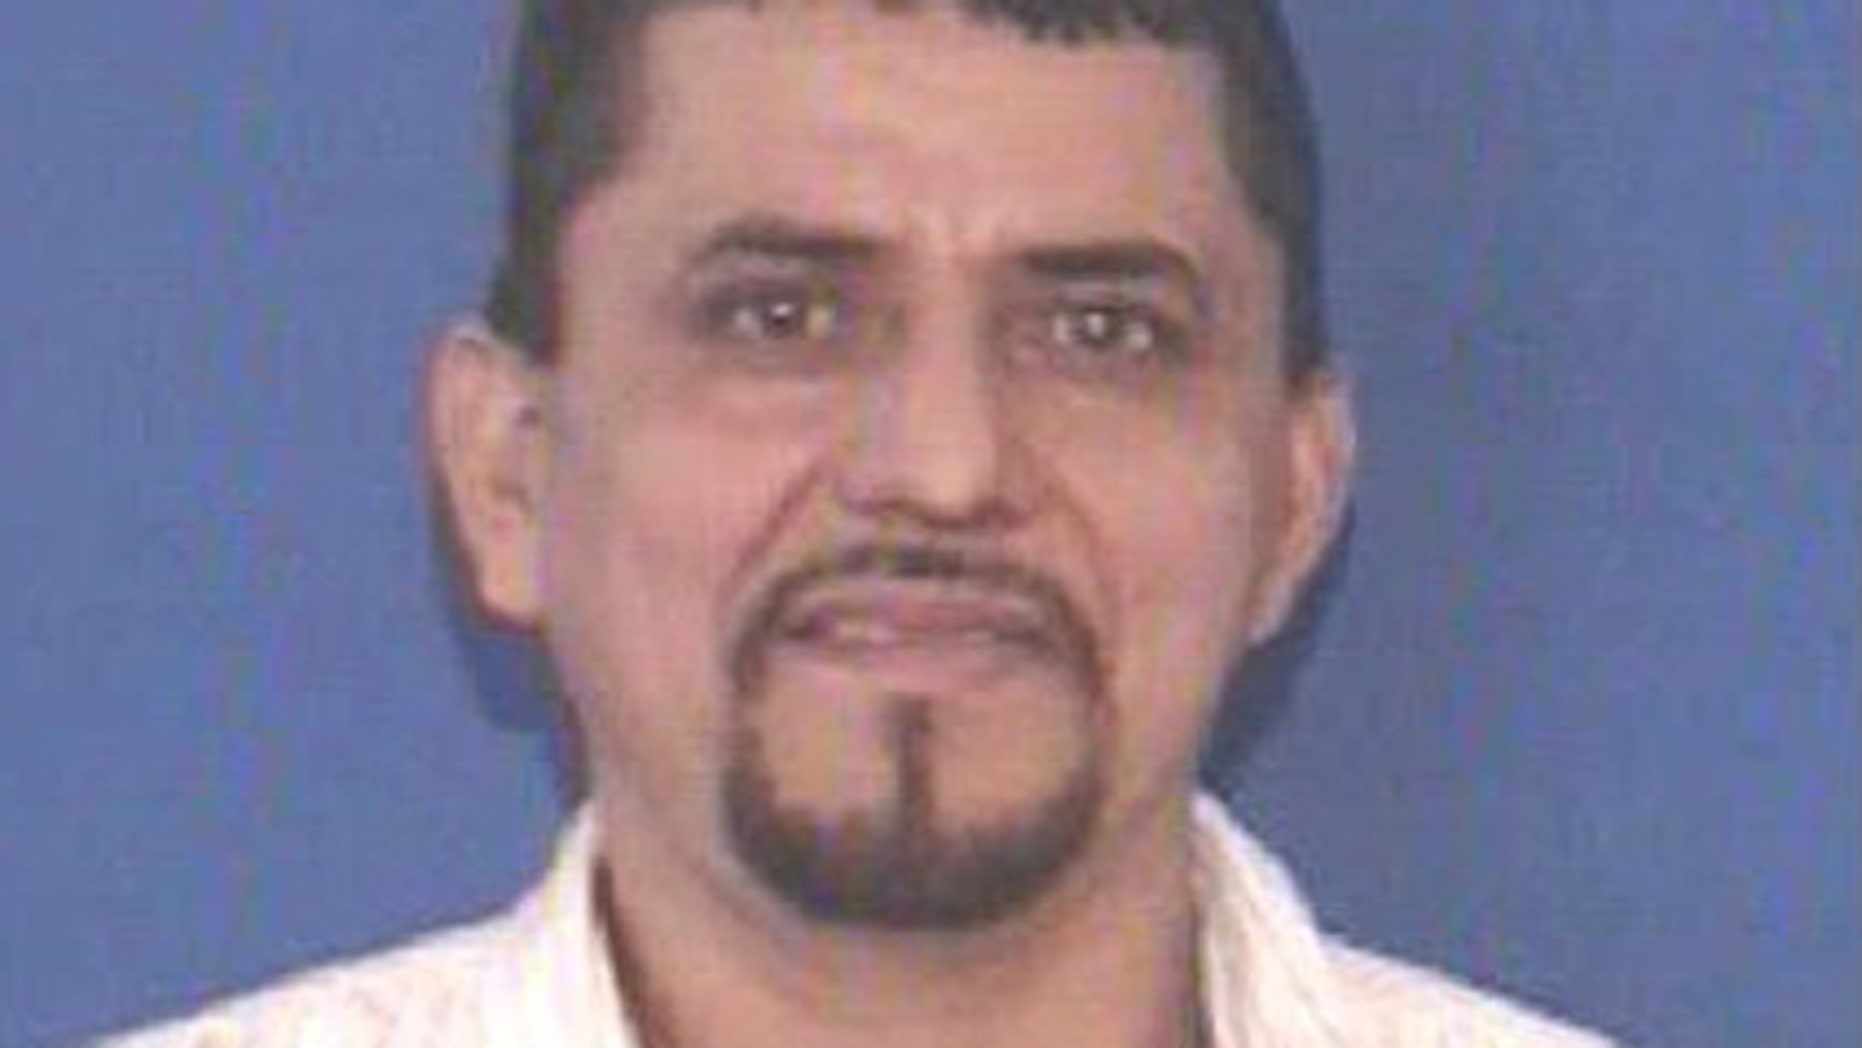 Daniel Alfaro Mendoza has been charged in a murder-for-hire plot, accused of planning to kill his wife and one of her friends.